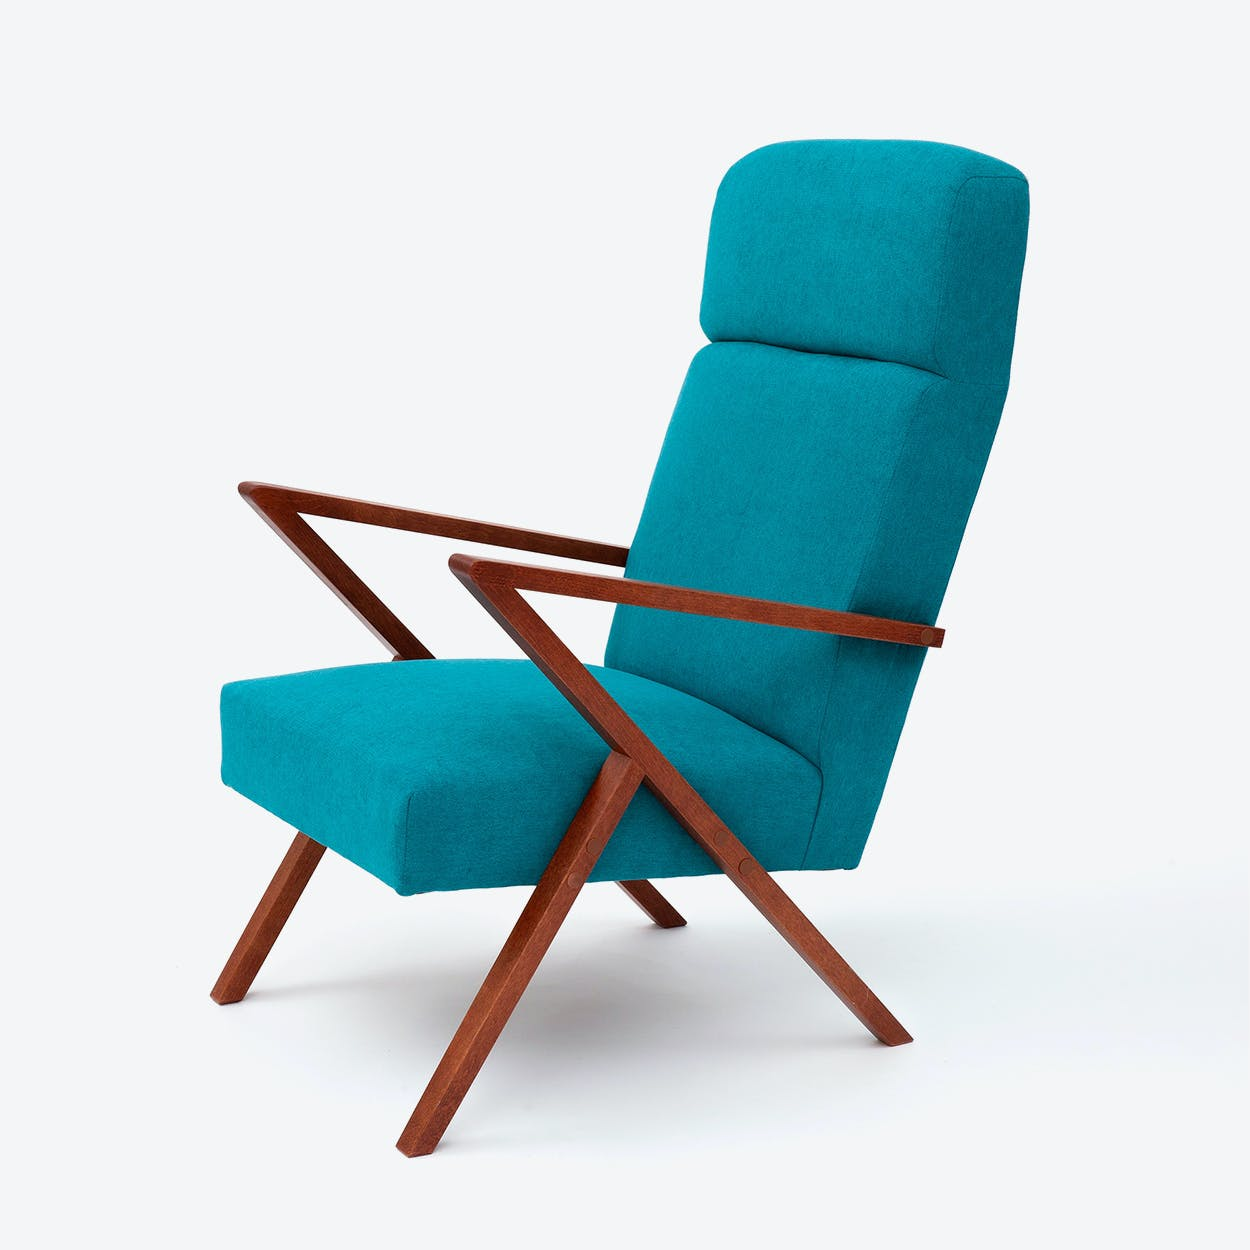 Retrostar Lounge Chair - Basic-Line in Turquoise